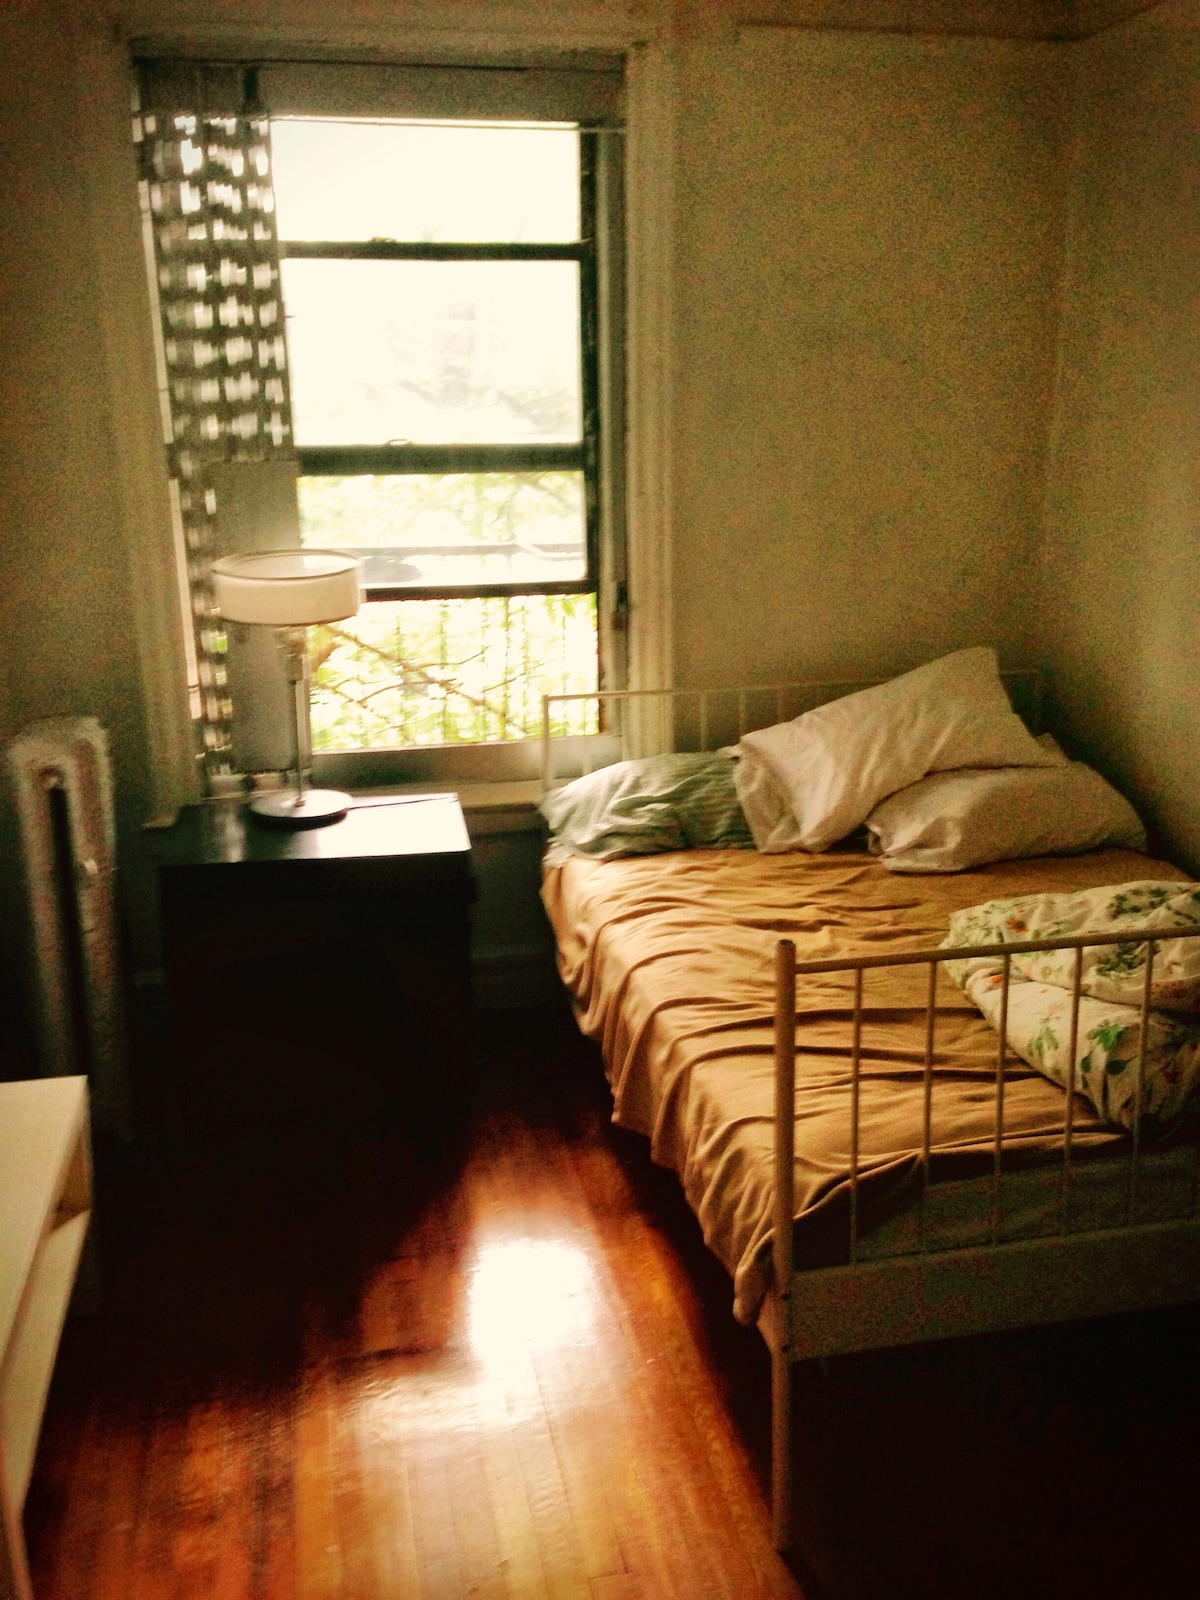 Stay at Prospect Park Brooklyn!